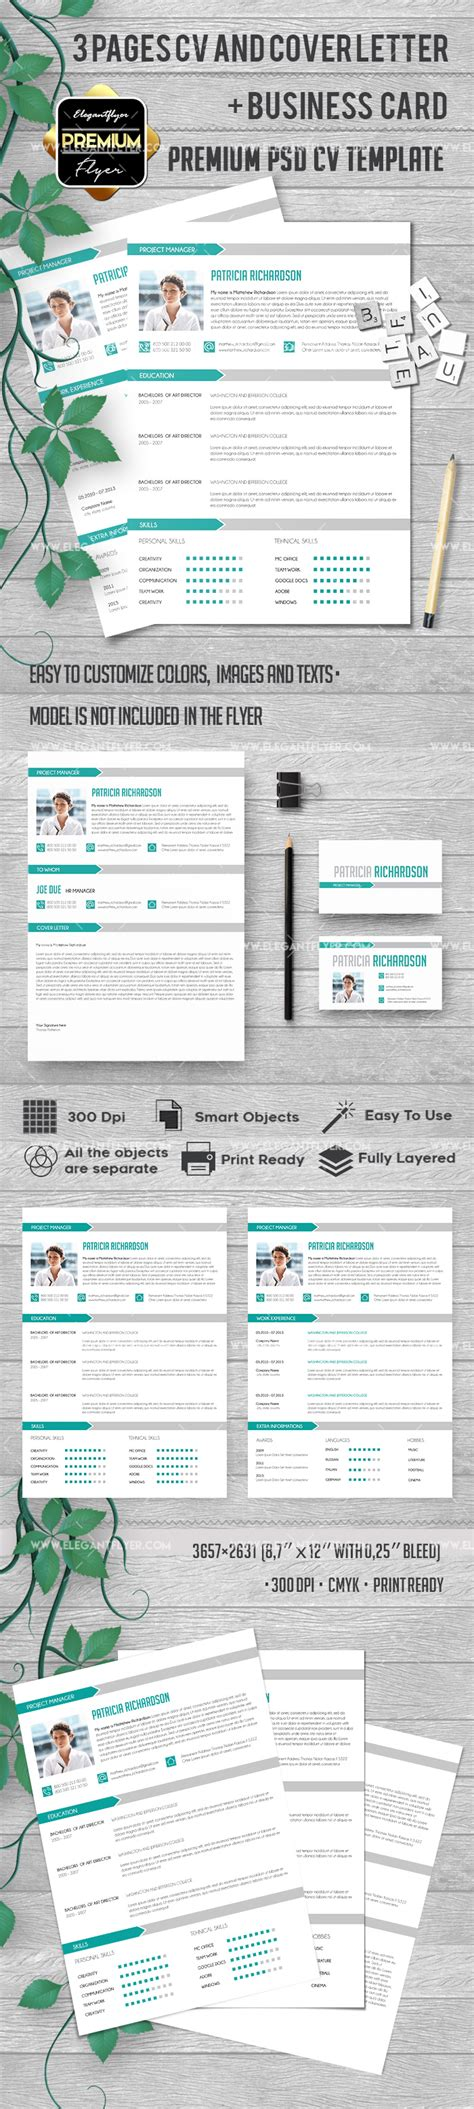 Ui Ux Designer Resume Pdf by To A Resume Resume Format In Resume Writing Dallas Social Worker Resume